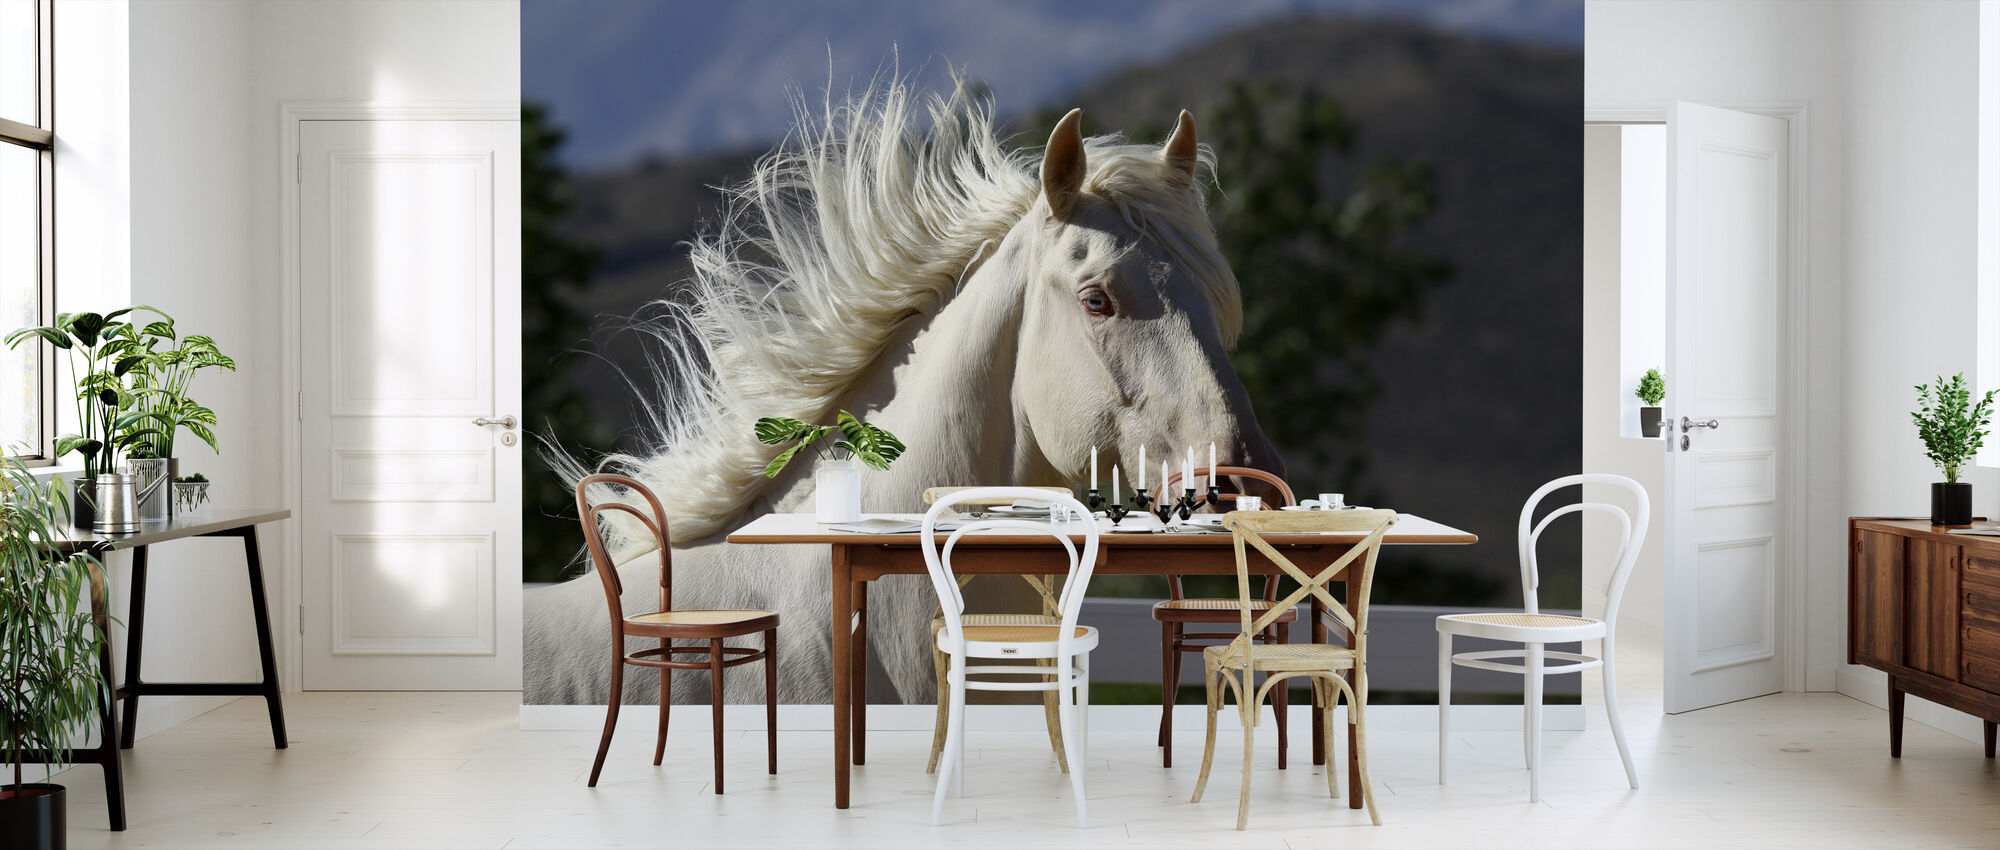 white lusitano horse beliebte fototapete photowall. Black Bedroom Furniture Sets. Home Design Ideas